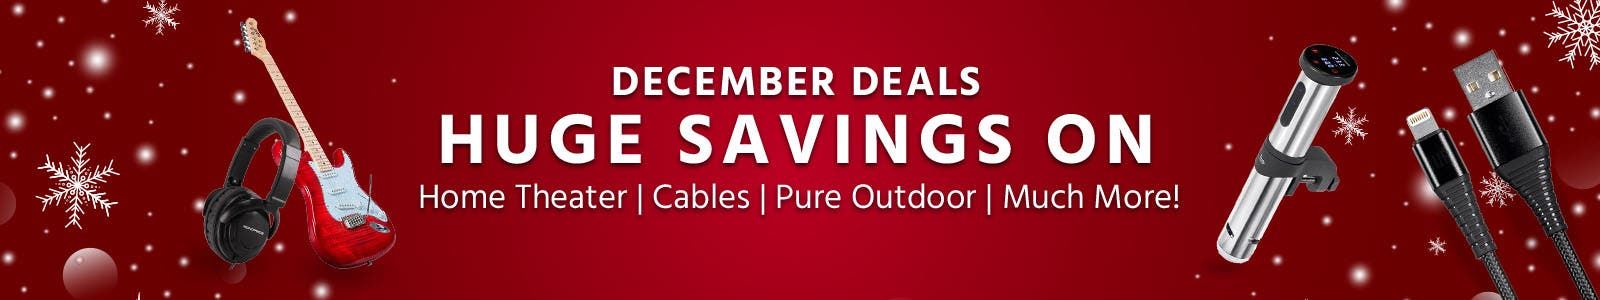 December Deals - Huge Savings On Home Theater | Cables | Pure Outdoor | Much More!